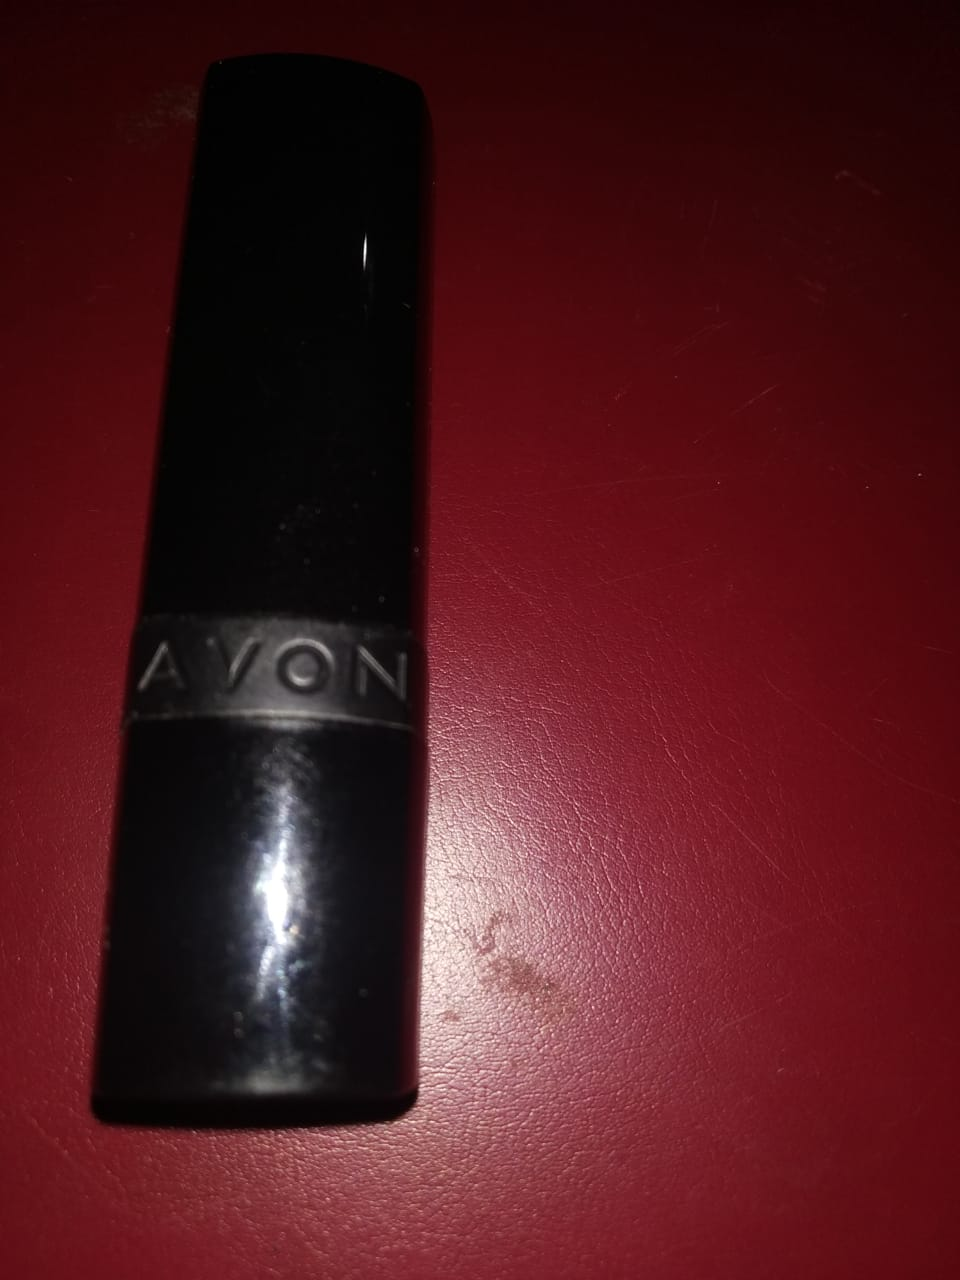 Avon True Color Perfectly Matte Lipstick pic 1-creamy lipstick-By fashionalaya_